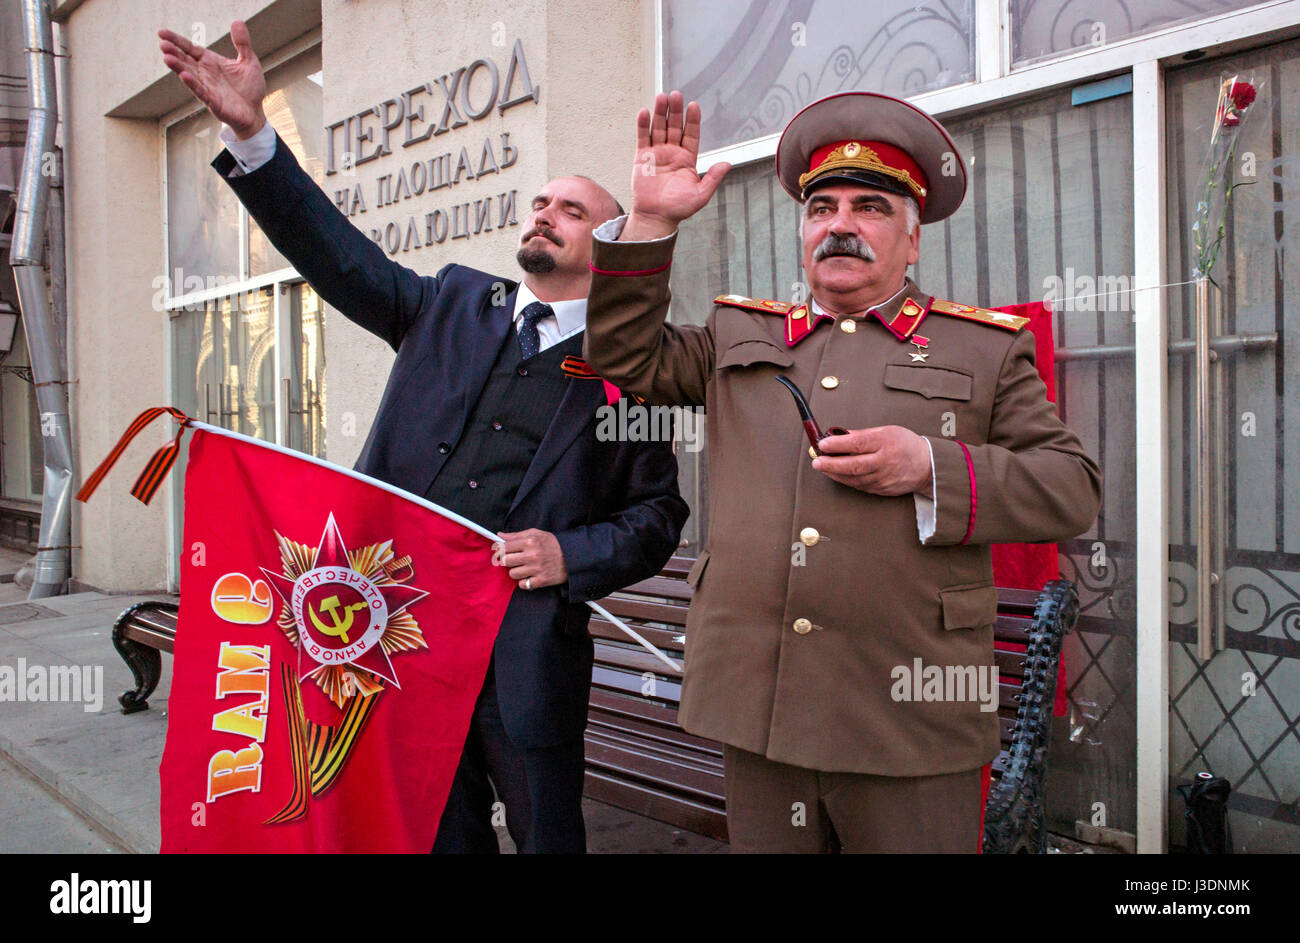 Lenin and Stalin - Stock Image